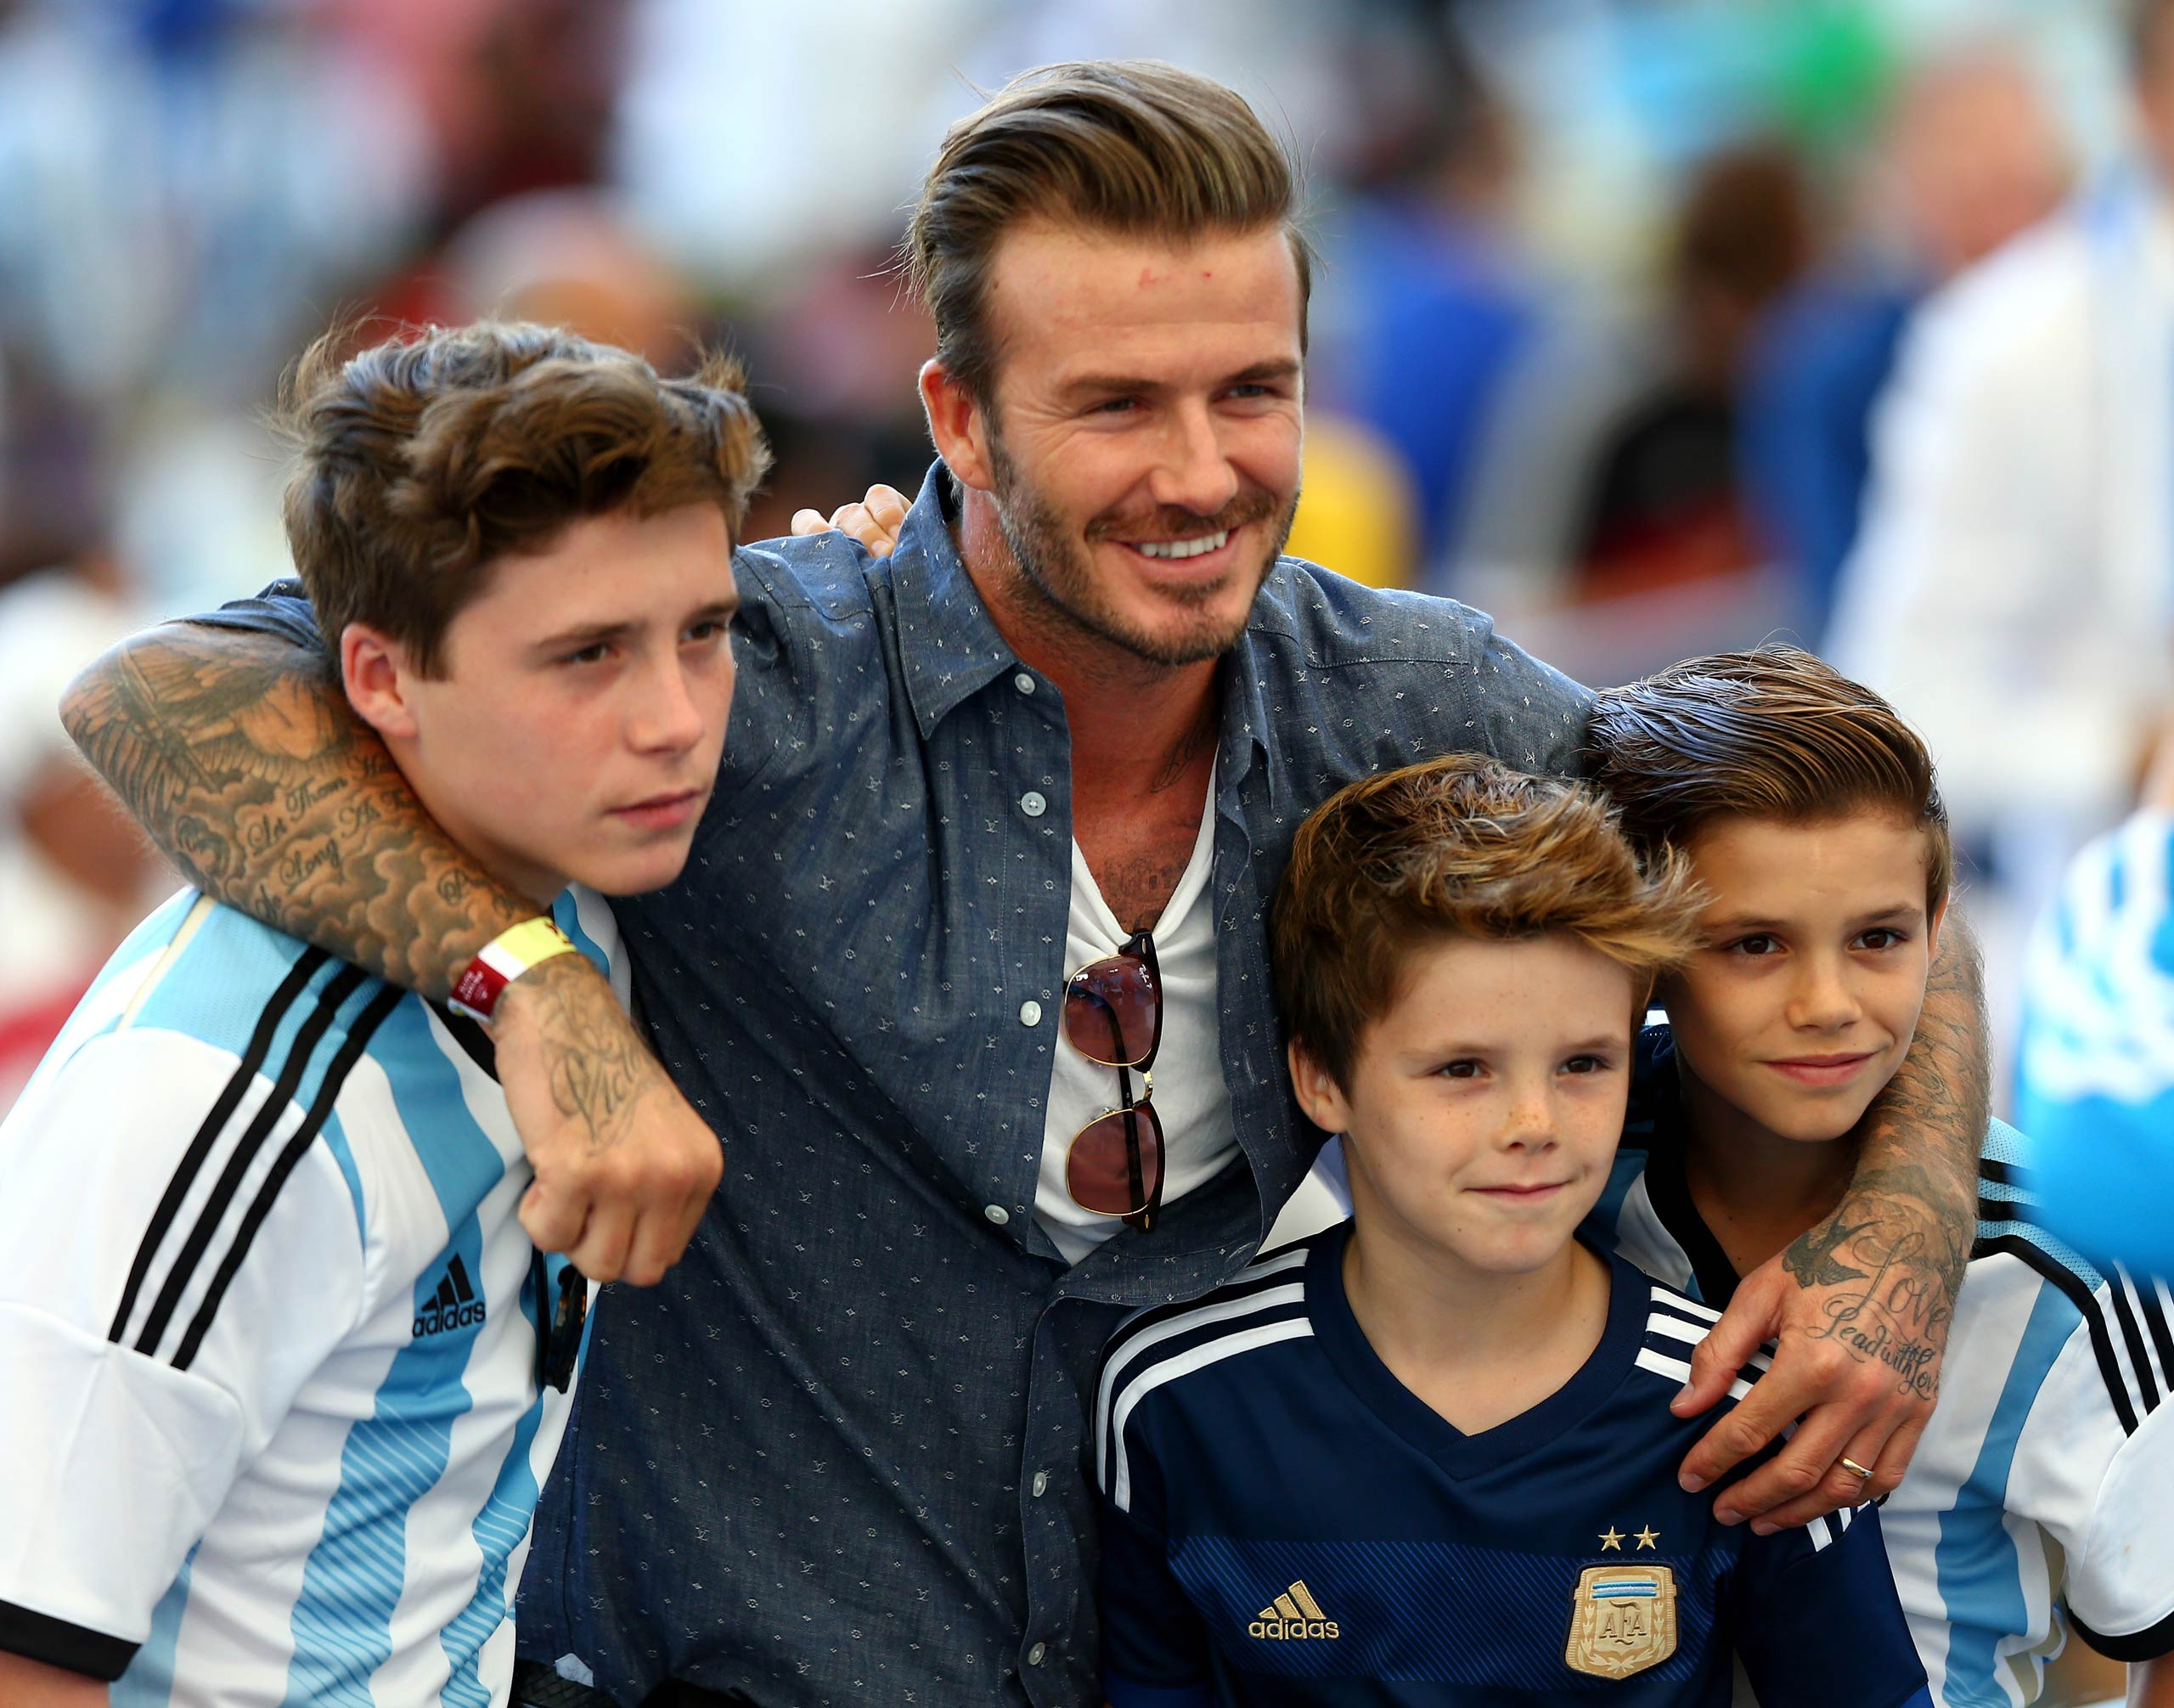 David Beckham and sons Brooklyn Beckham, Cruz Beckham, and Romeo Beckham are seen prior to the 2014 FIFA World Cup Brazil Final match between Germany and Argentina in Rio de Janeiro, Brazil in 2014.